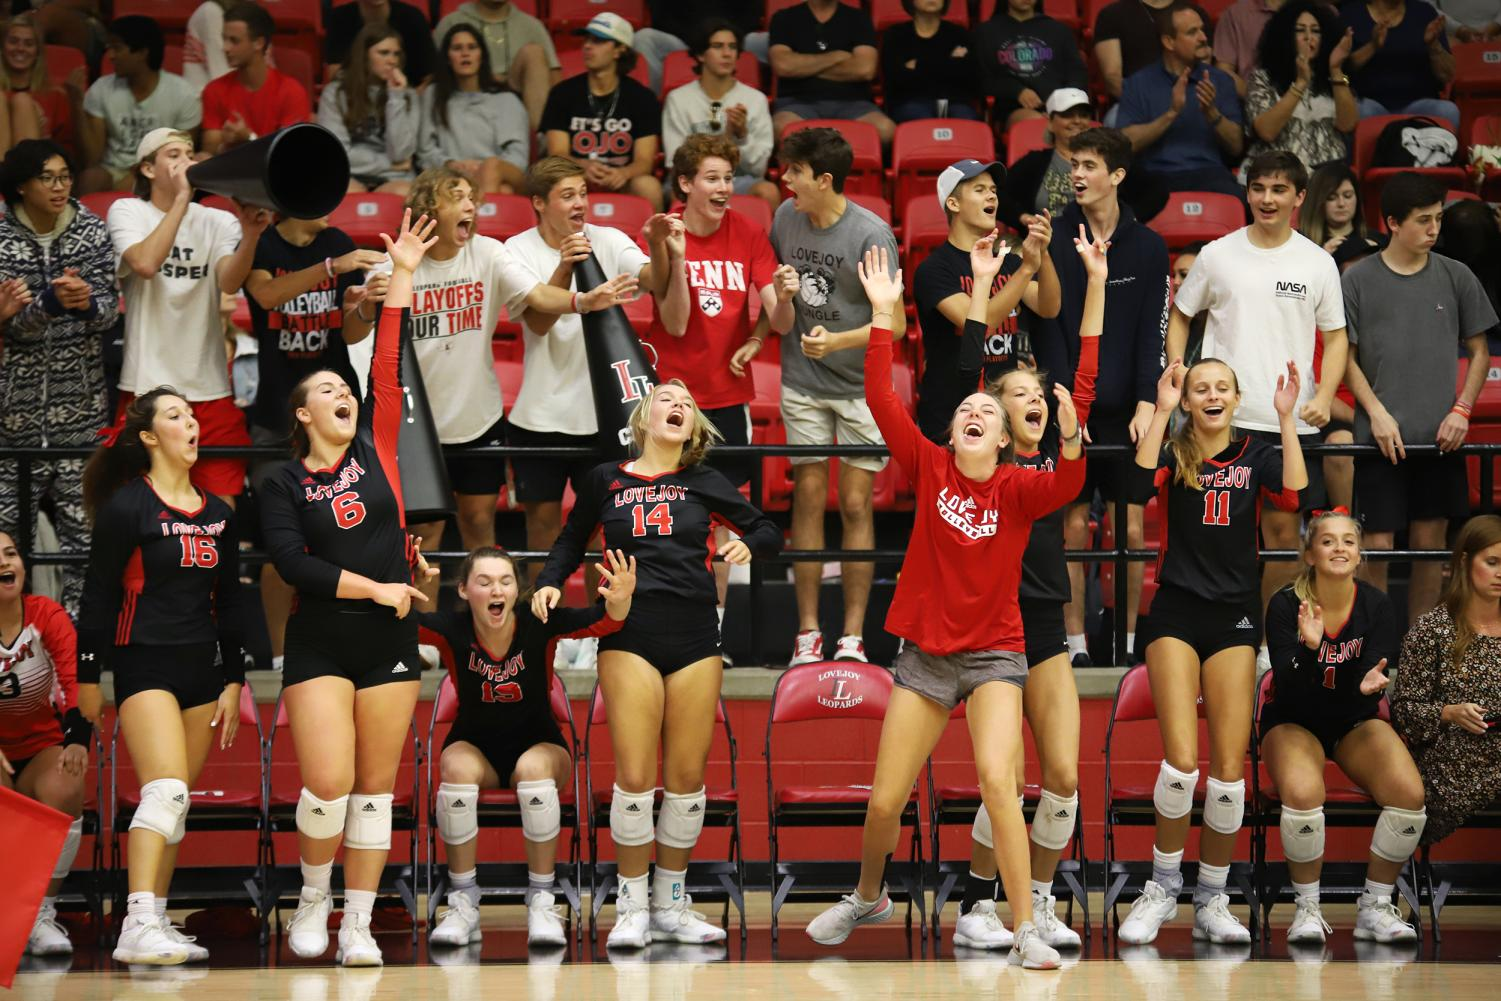 The+Lovejoy+volleyball+team+and+student+section+erupt+after+a+successful+block+during+the+third+set.